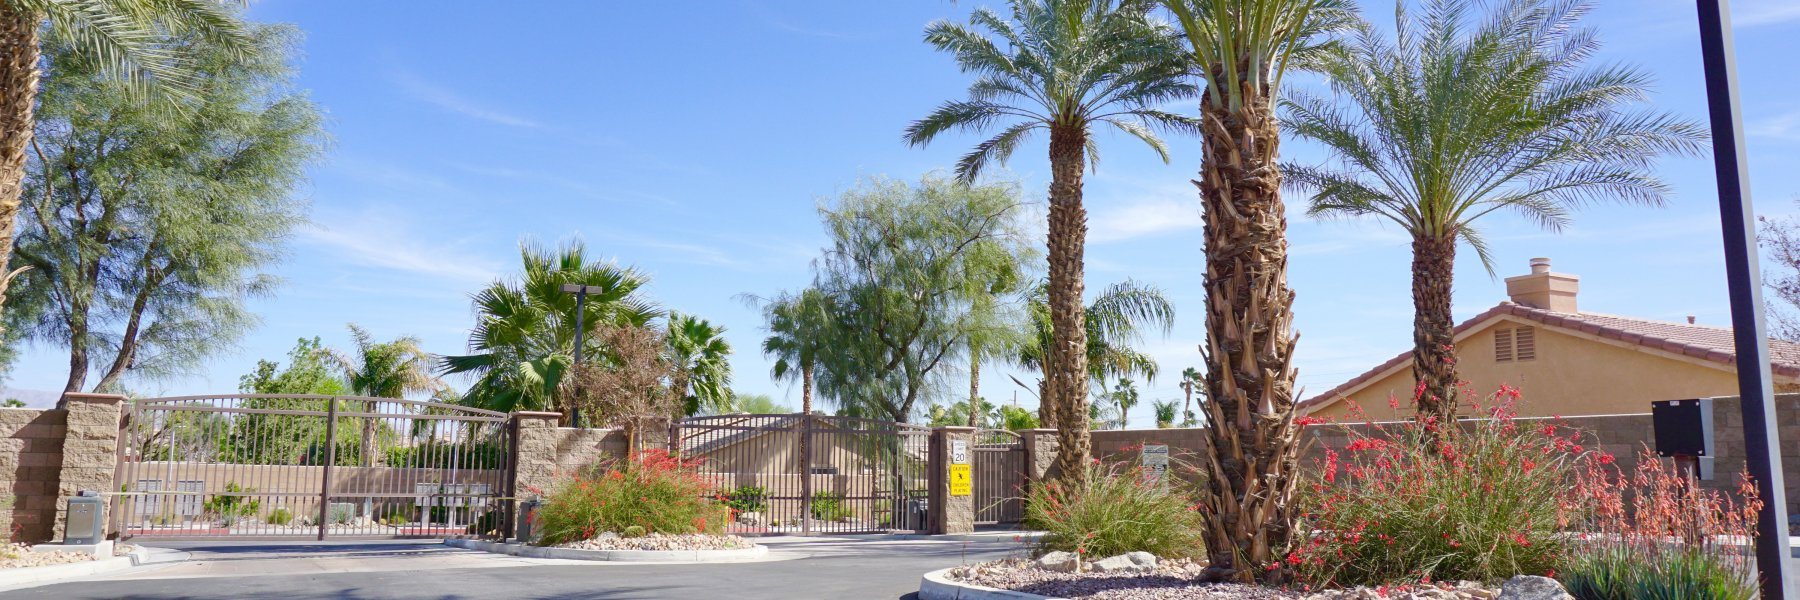 Monticello II is a community of homes in Indio California